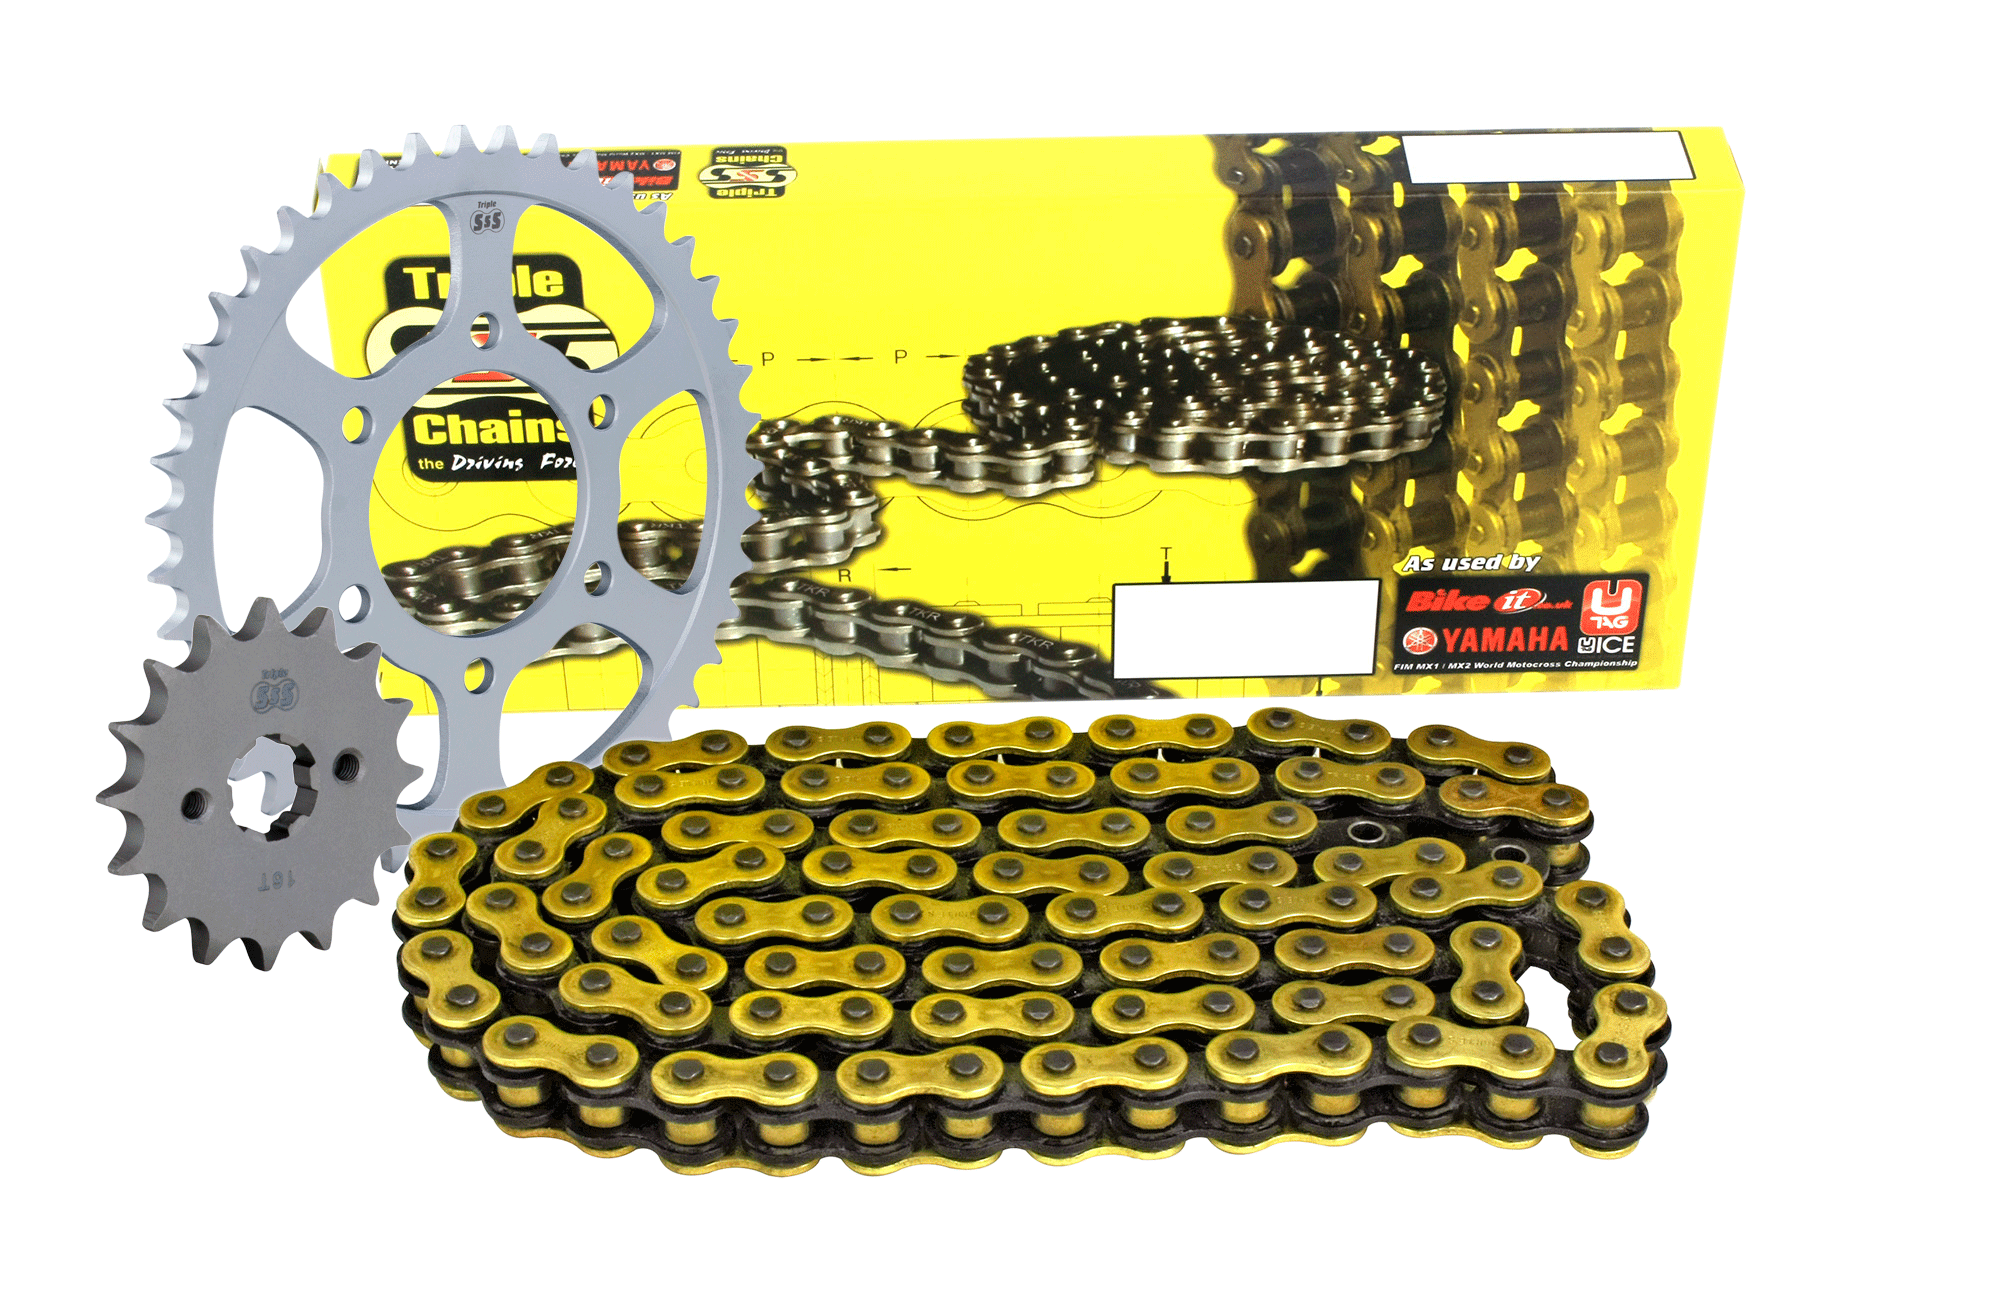 Honda VTR1000F-V/W/X/Y/1/2/3/4/5 Firestorm 97-05 Chain & Sprocket Kit